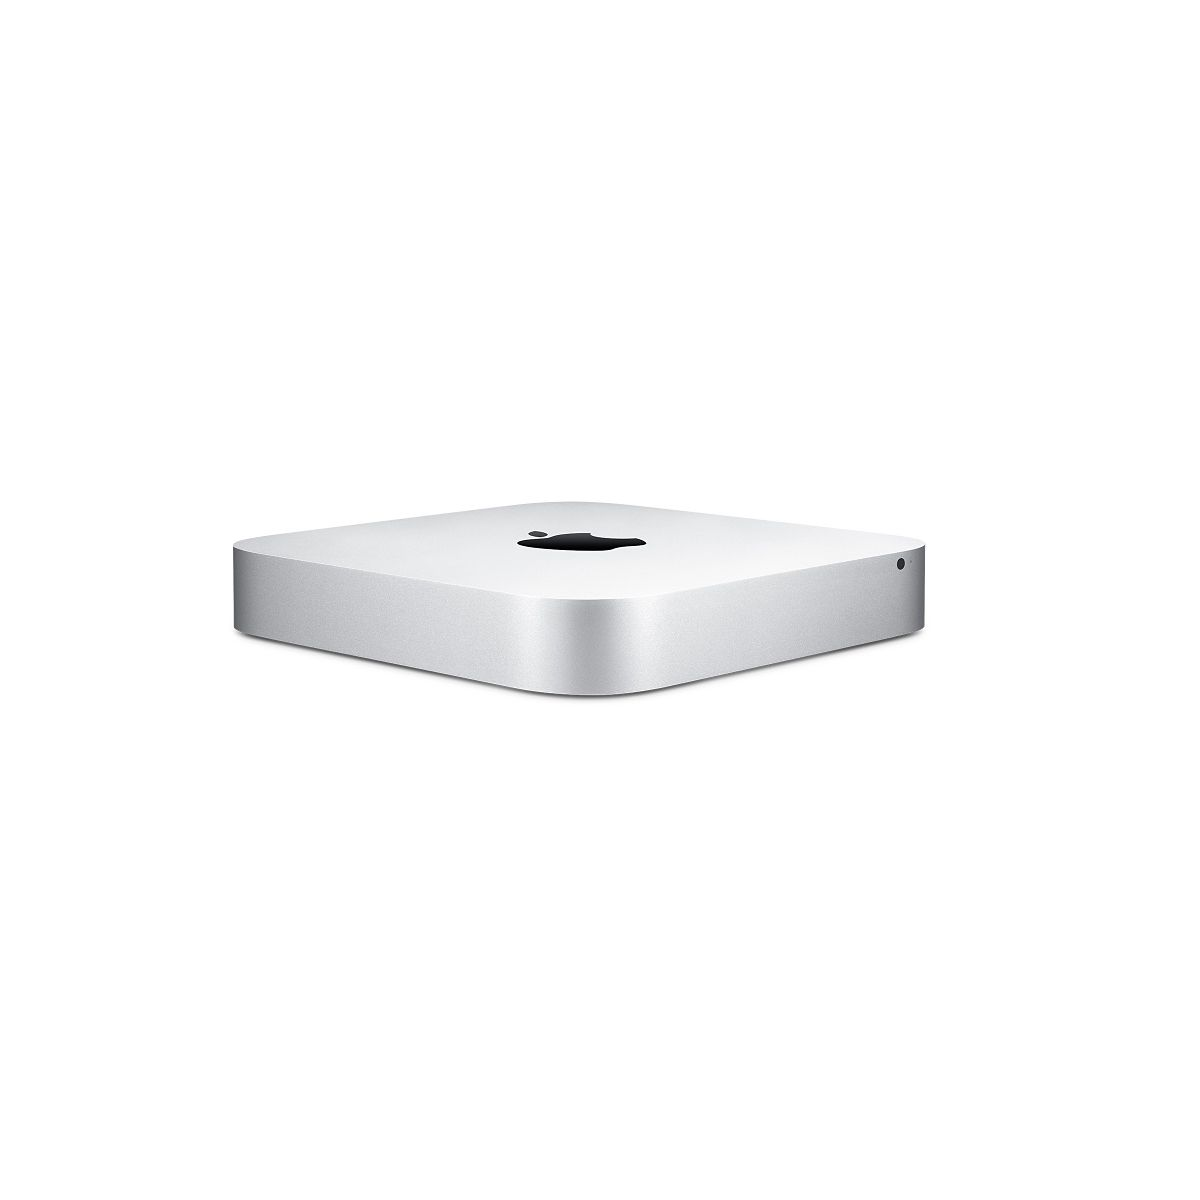 Apple mac mini 2.6ghz 8go 1to - mgen2f/a